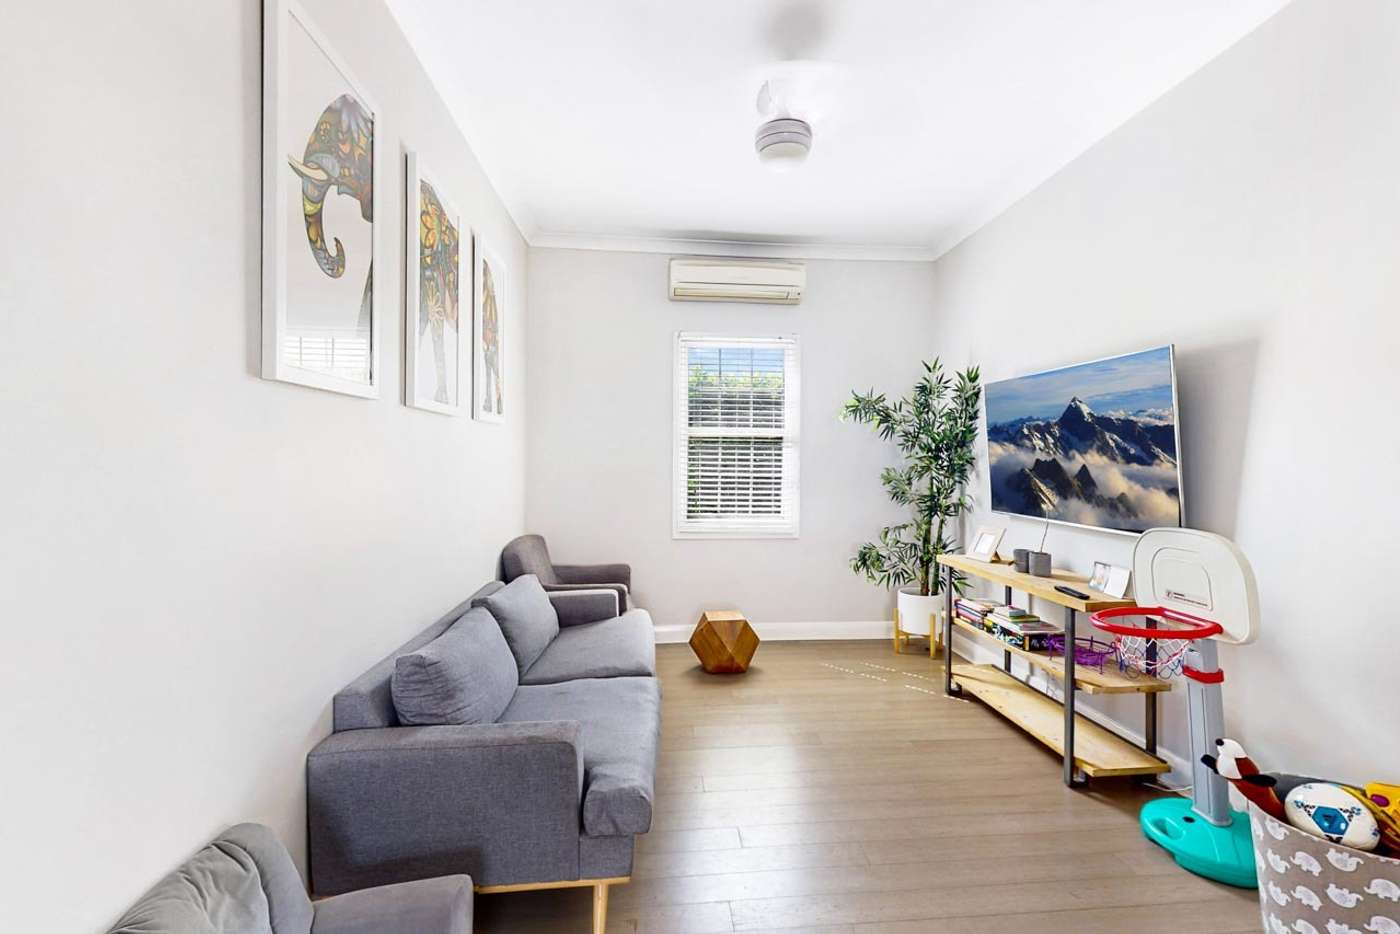 Fifth view of Homely house listing, 5 Hobart Road, New Lambton NSW 2305